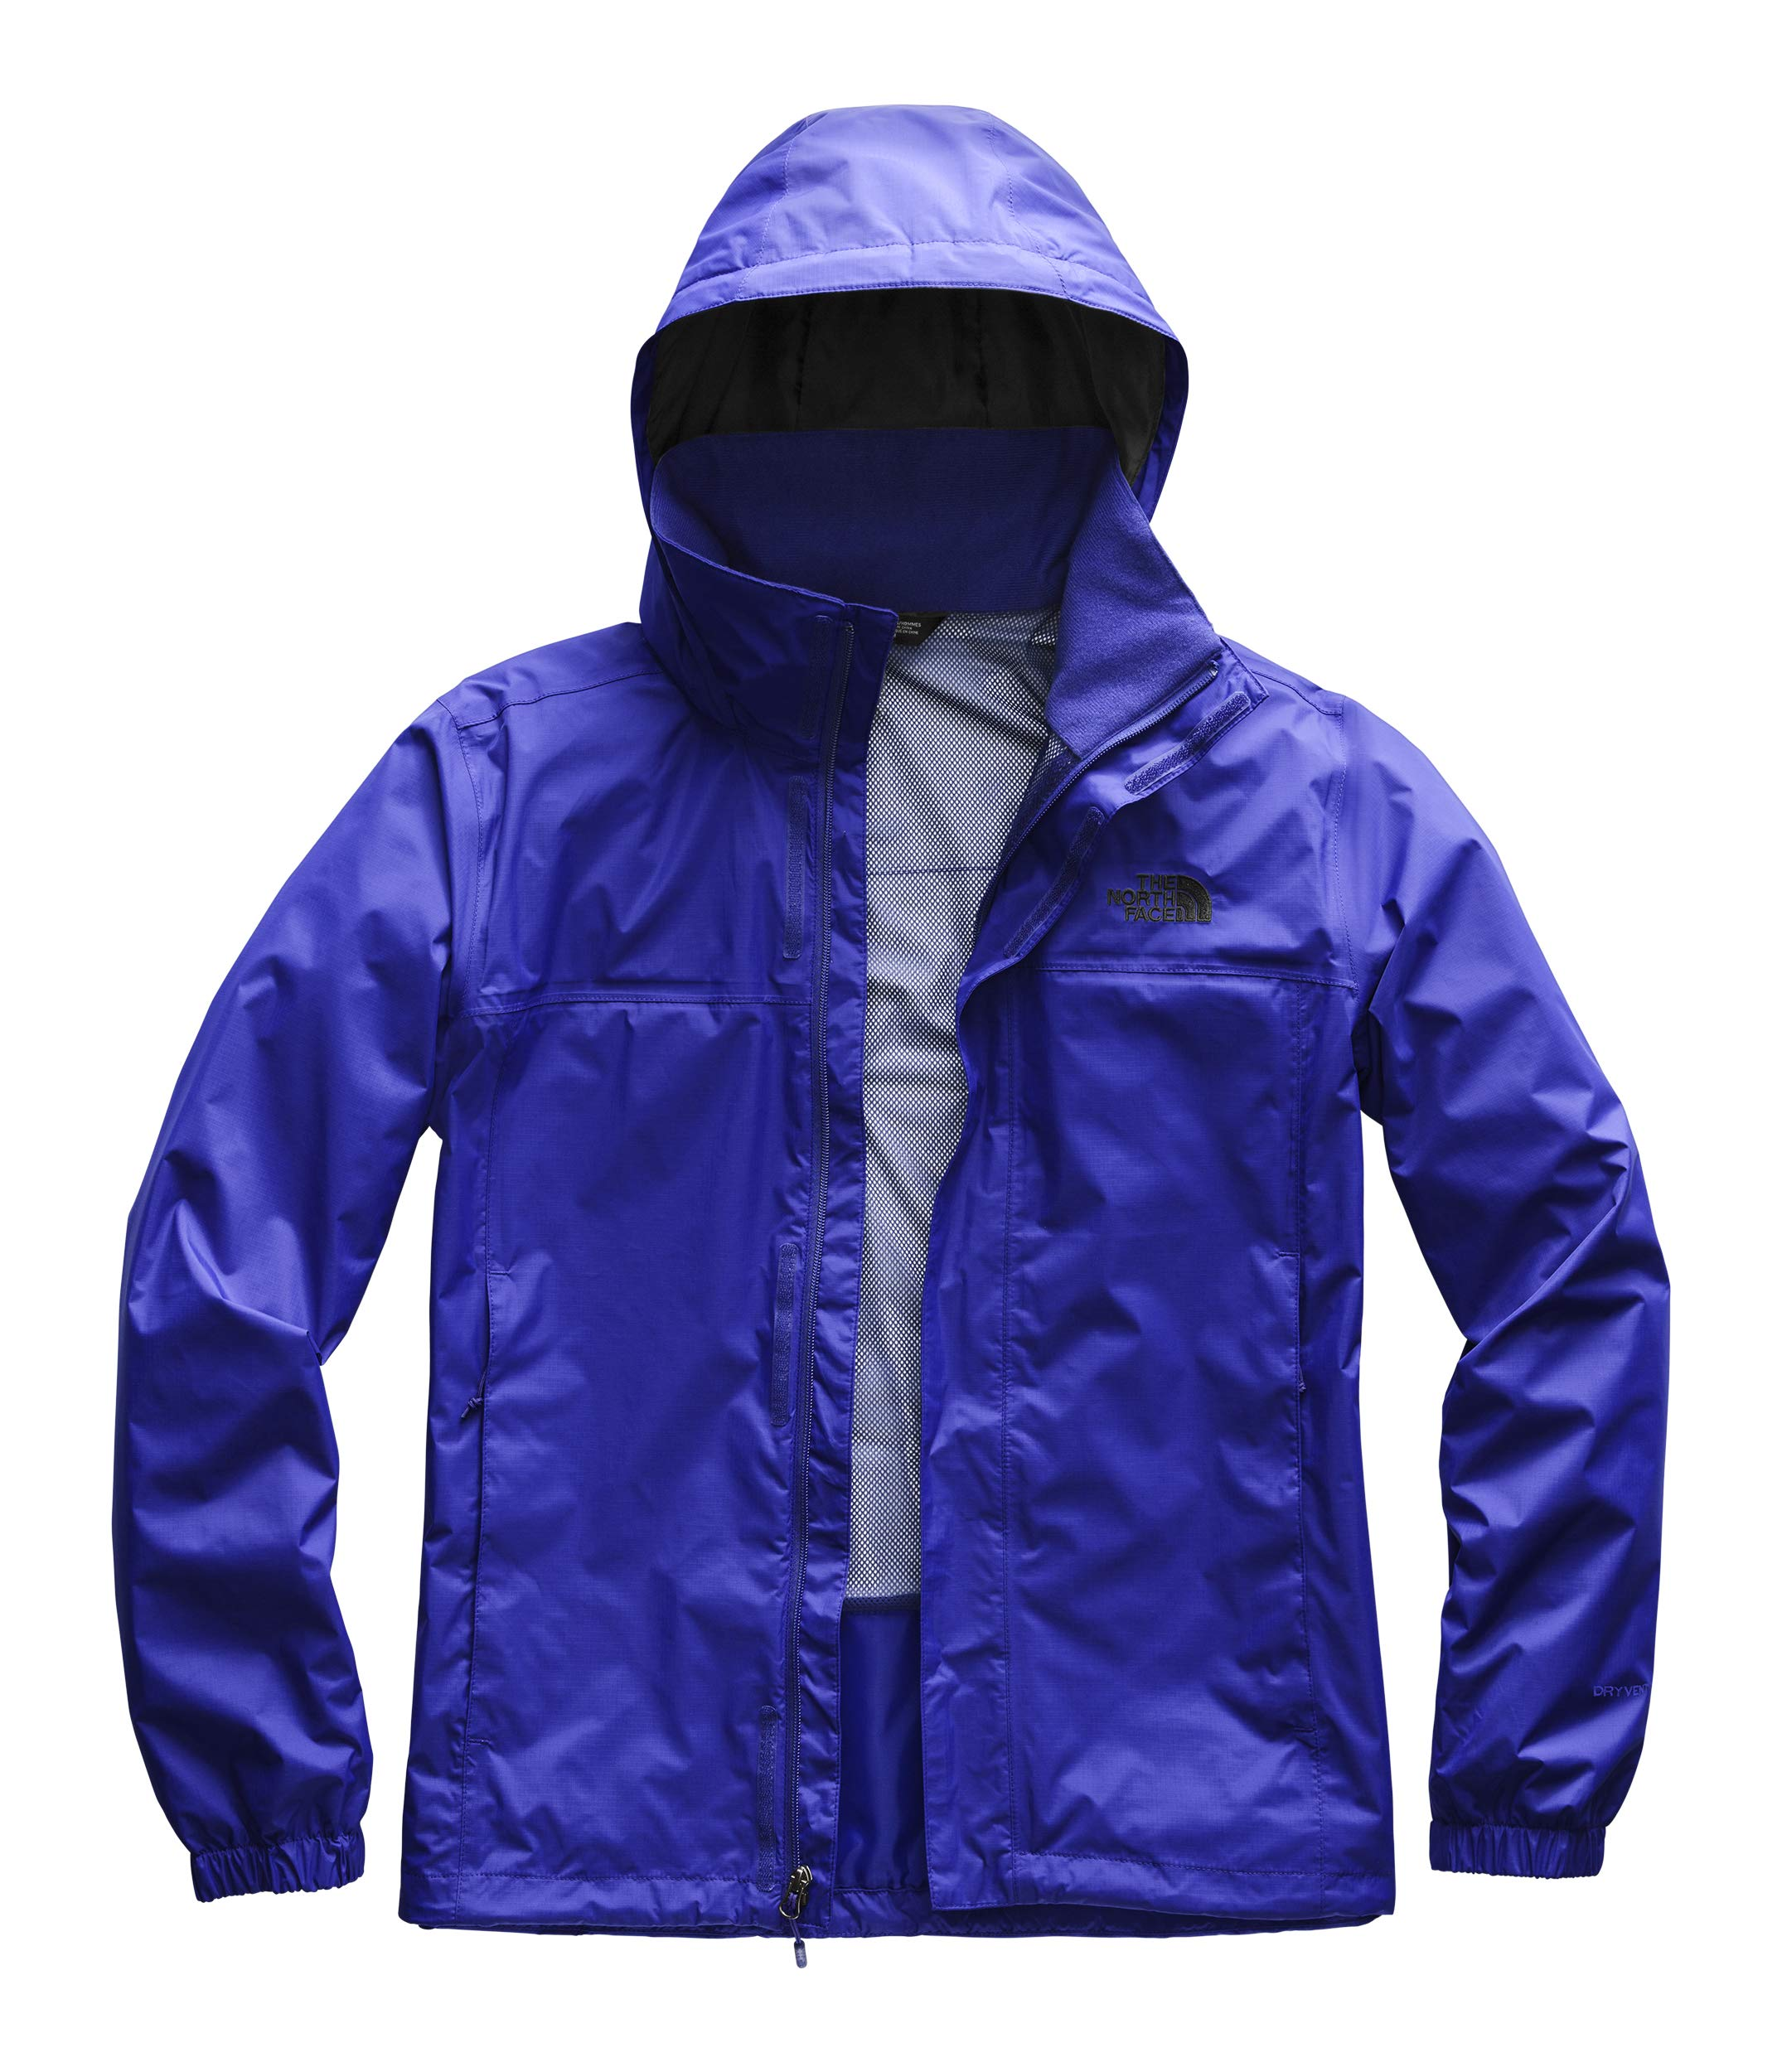 The North Face Men's Resolve 2 Jacket Aztec Blue Small